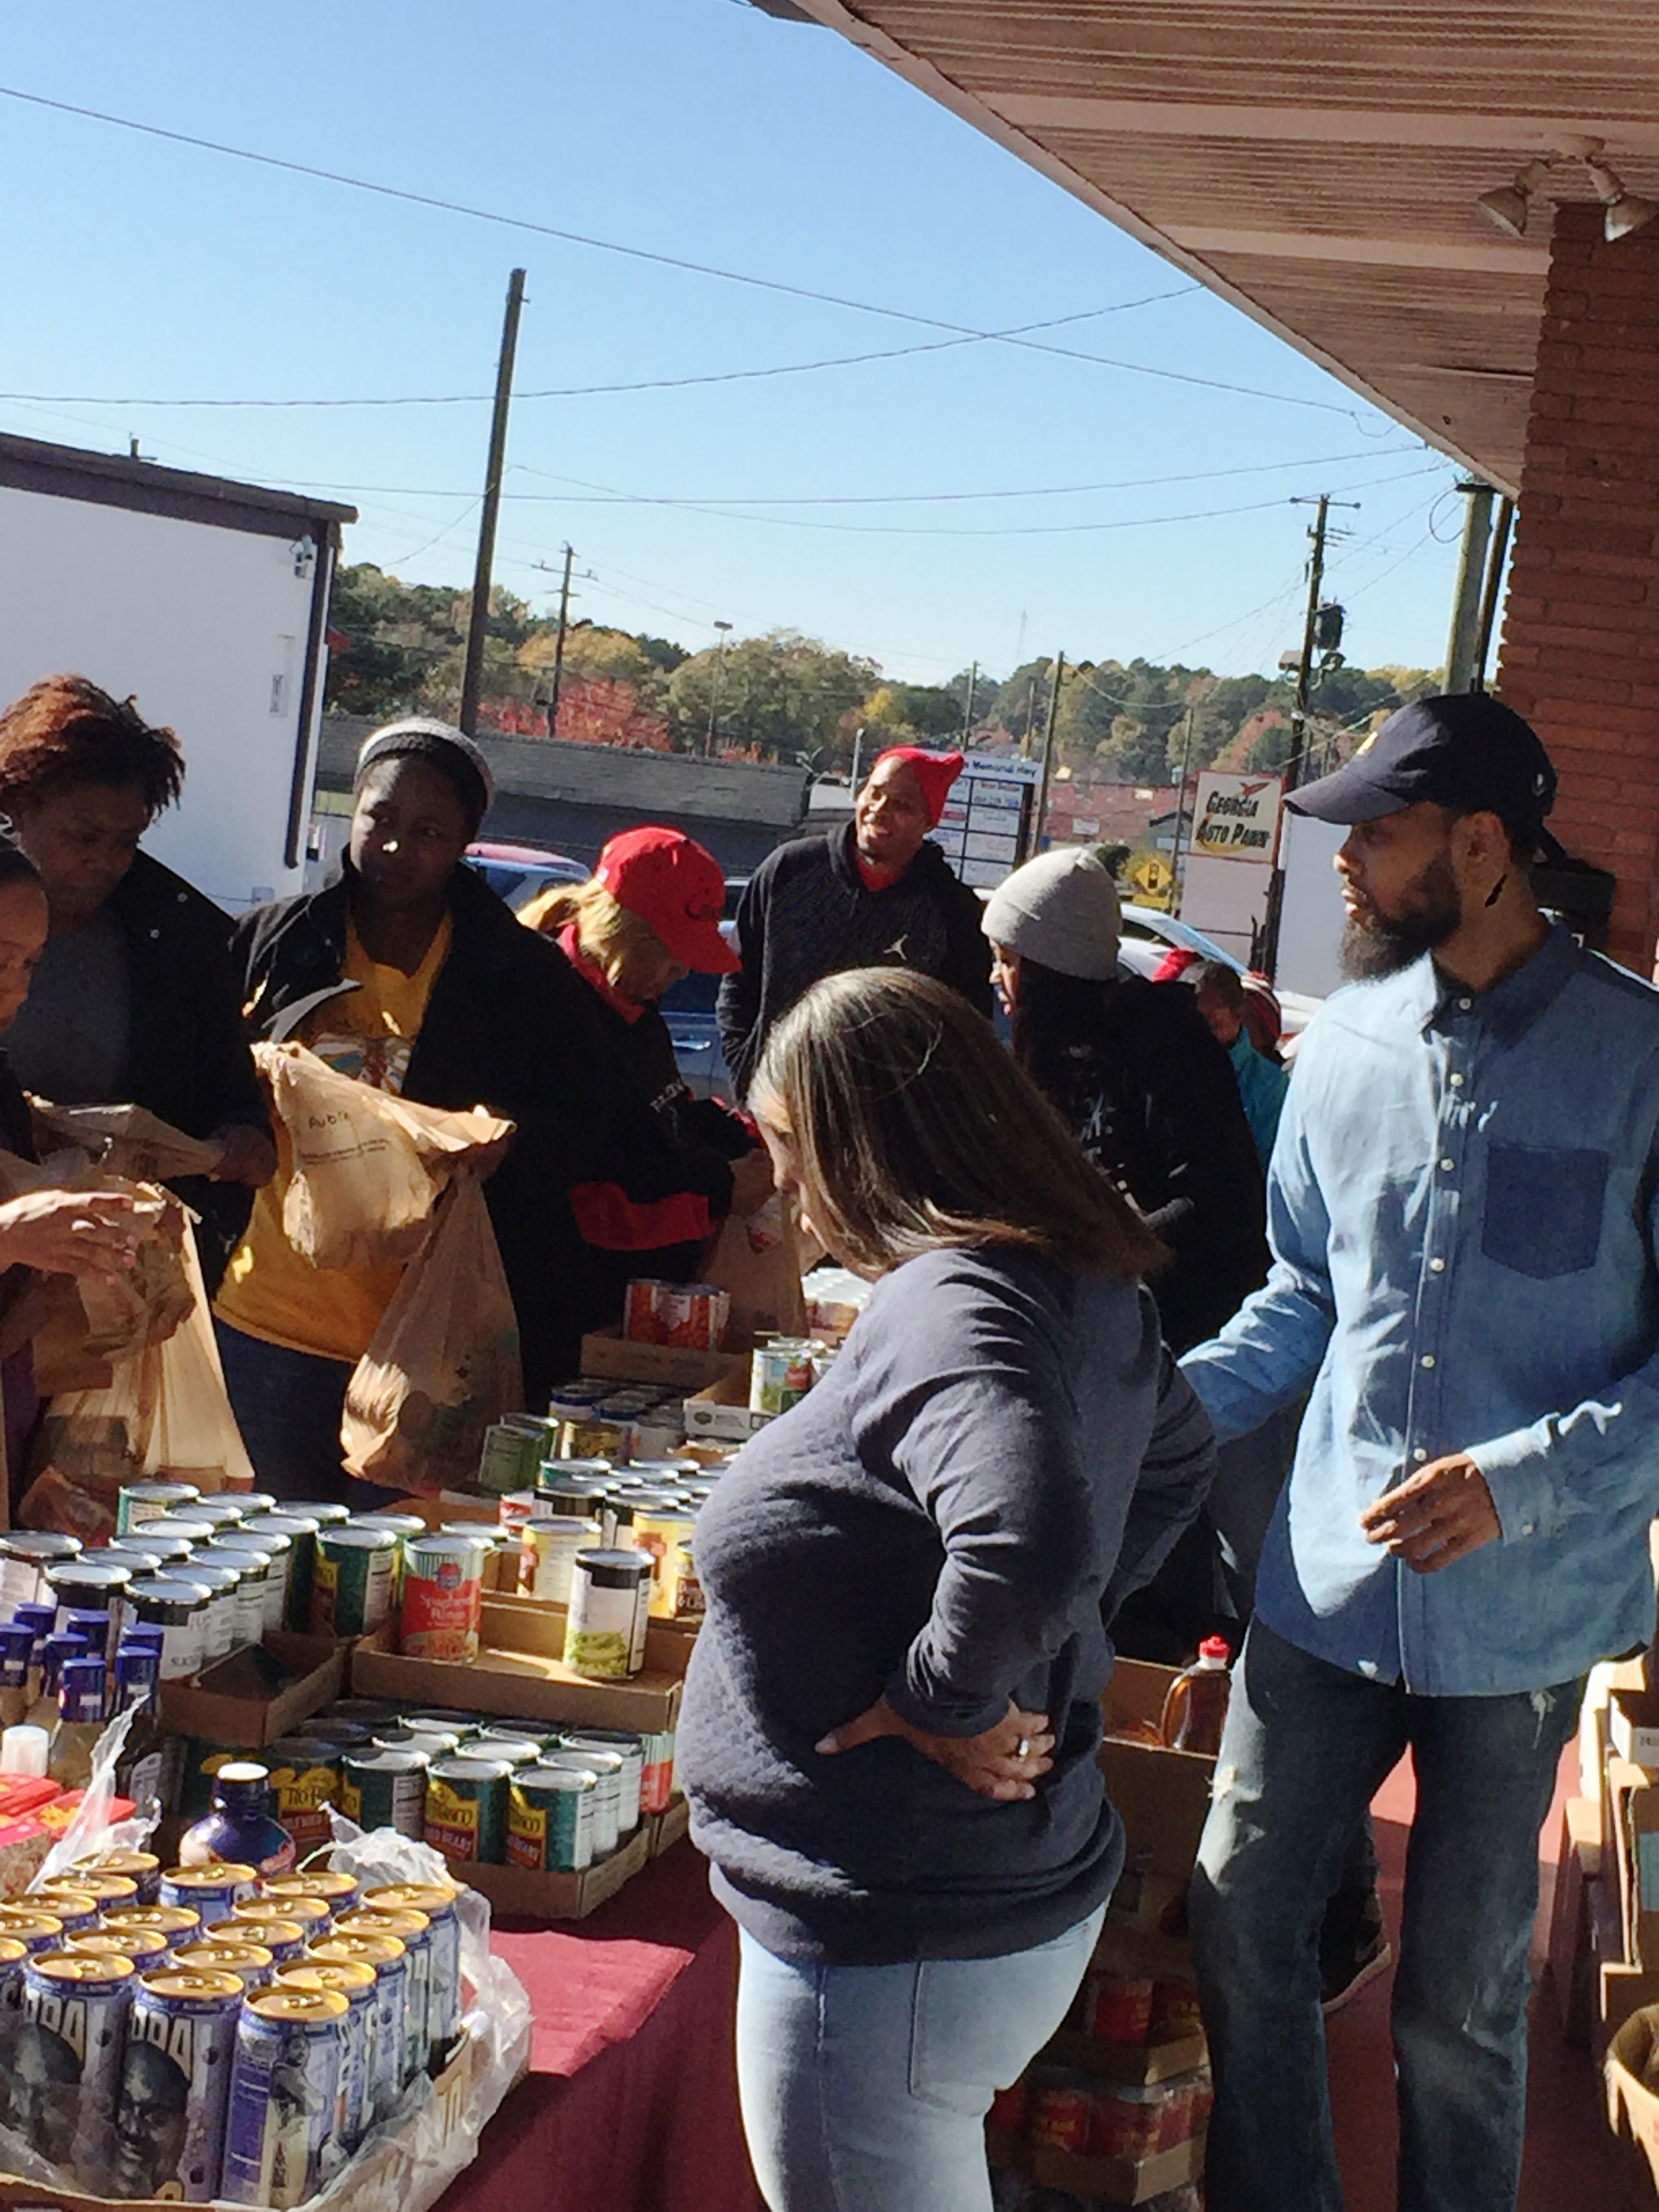 reec-host-grocery-give-away-payusa-11-20-15